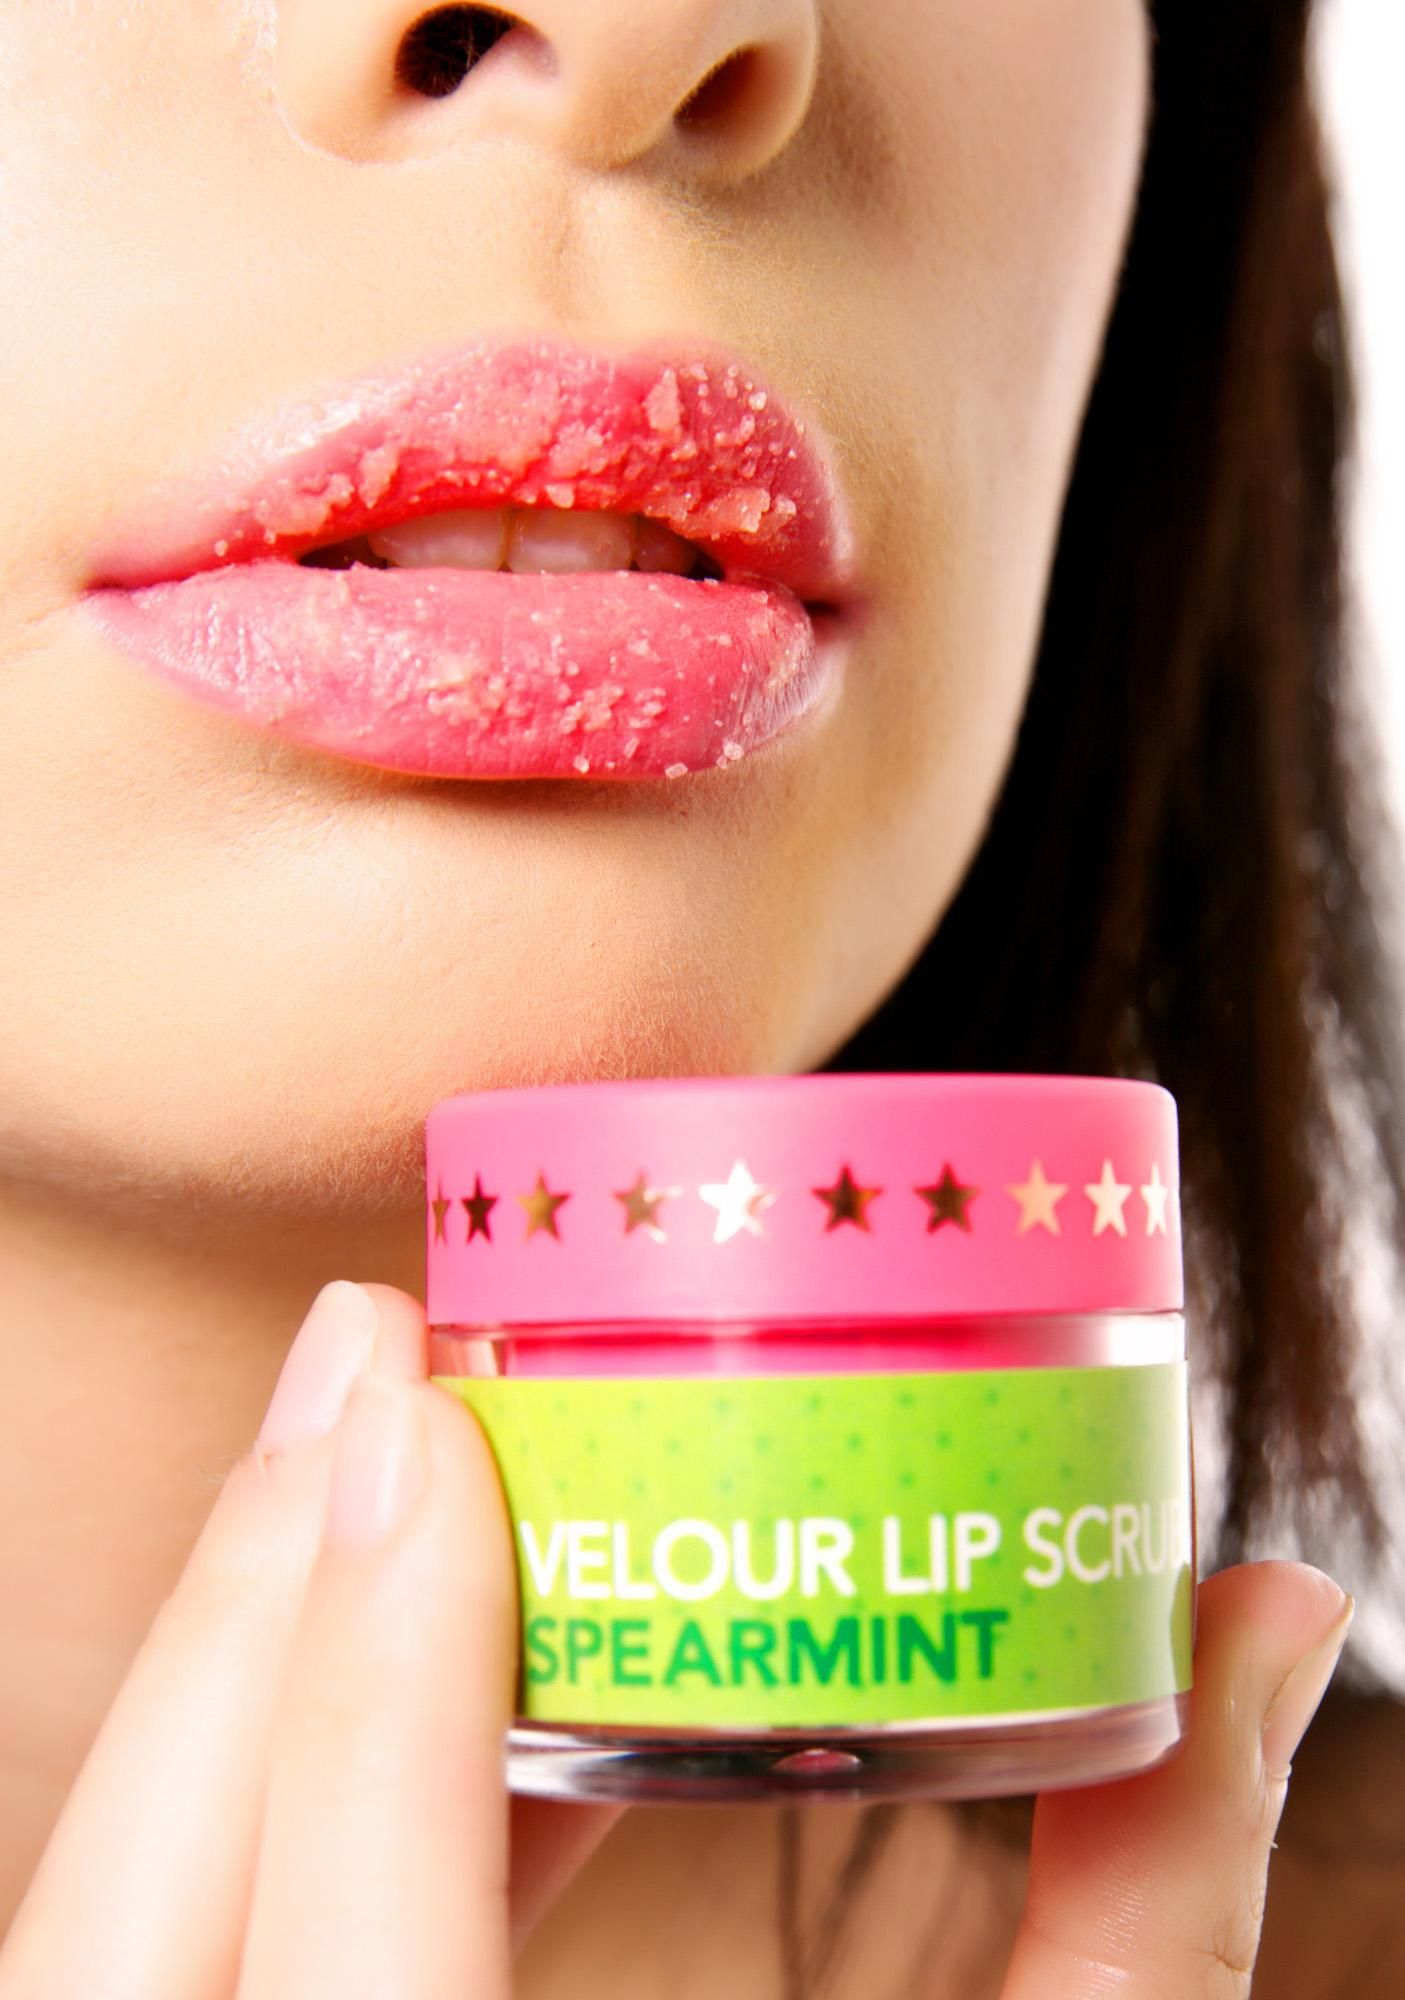 Jeffree Star Spearmint Velour Lip Scrub